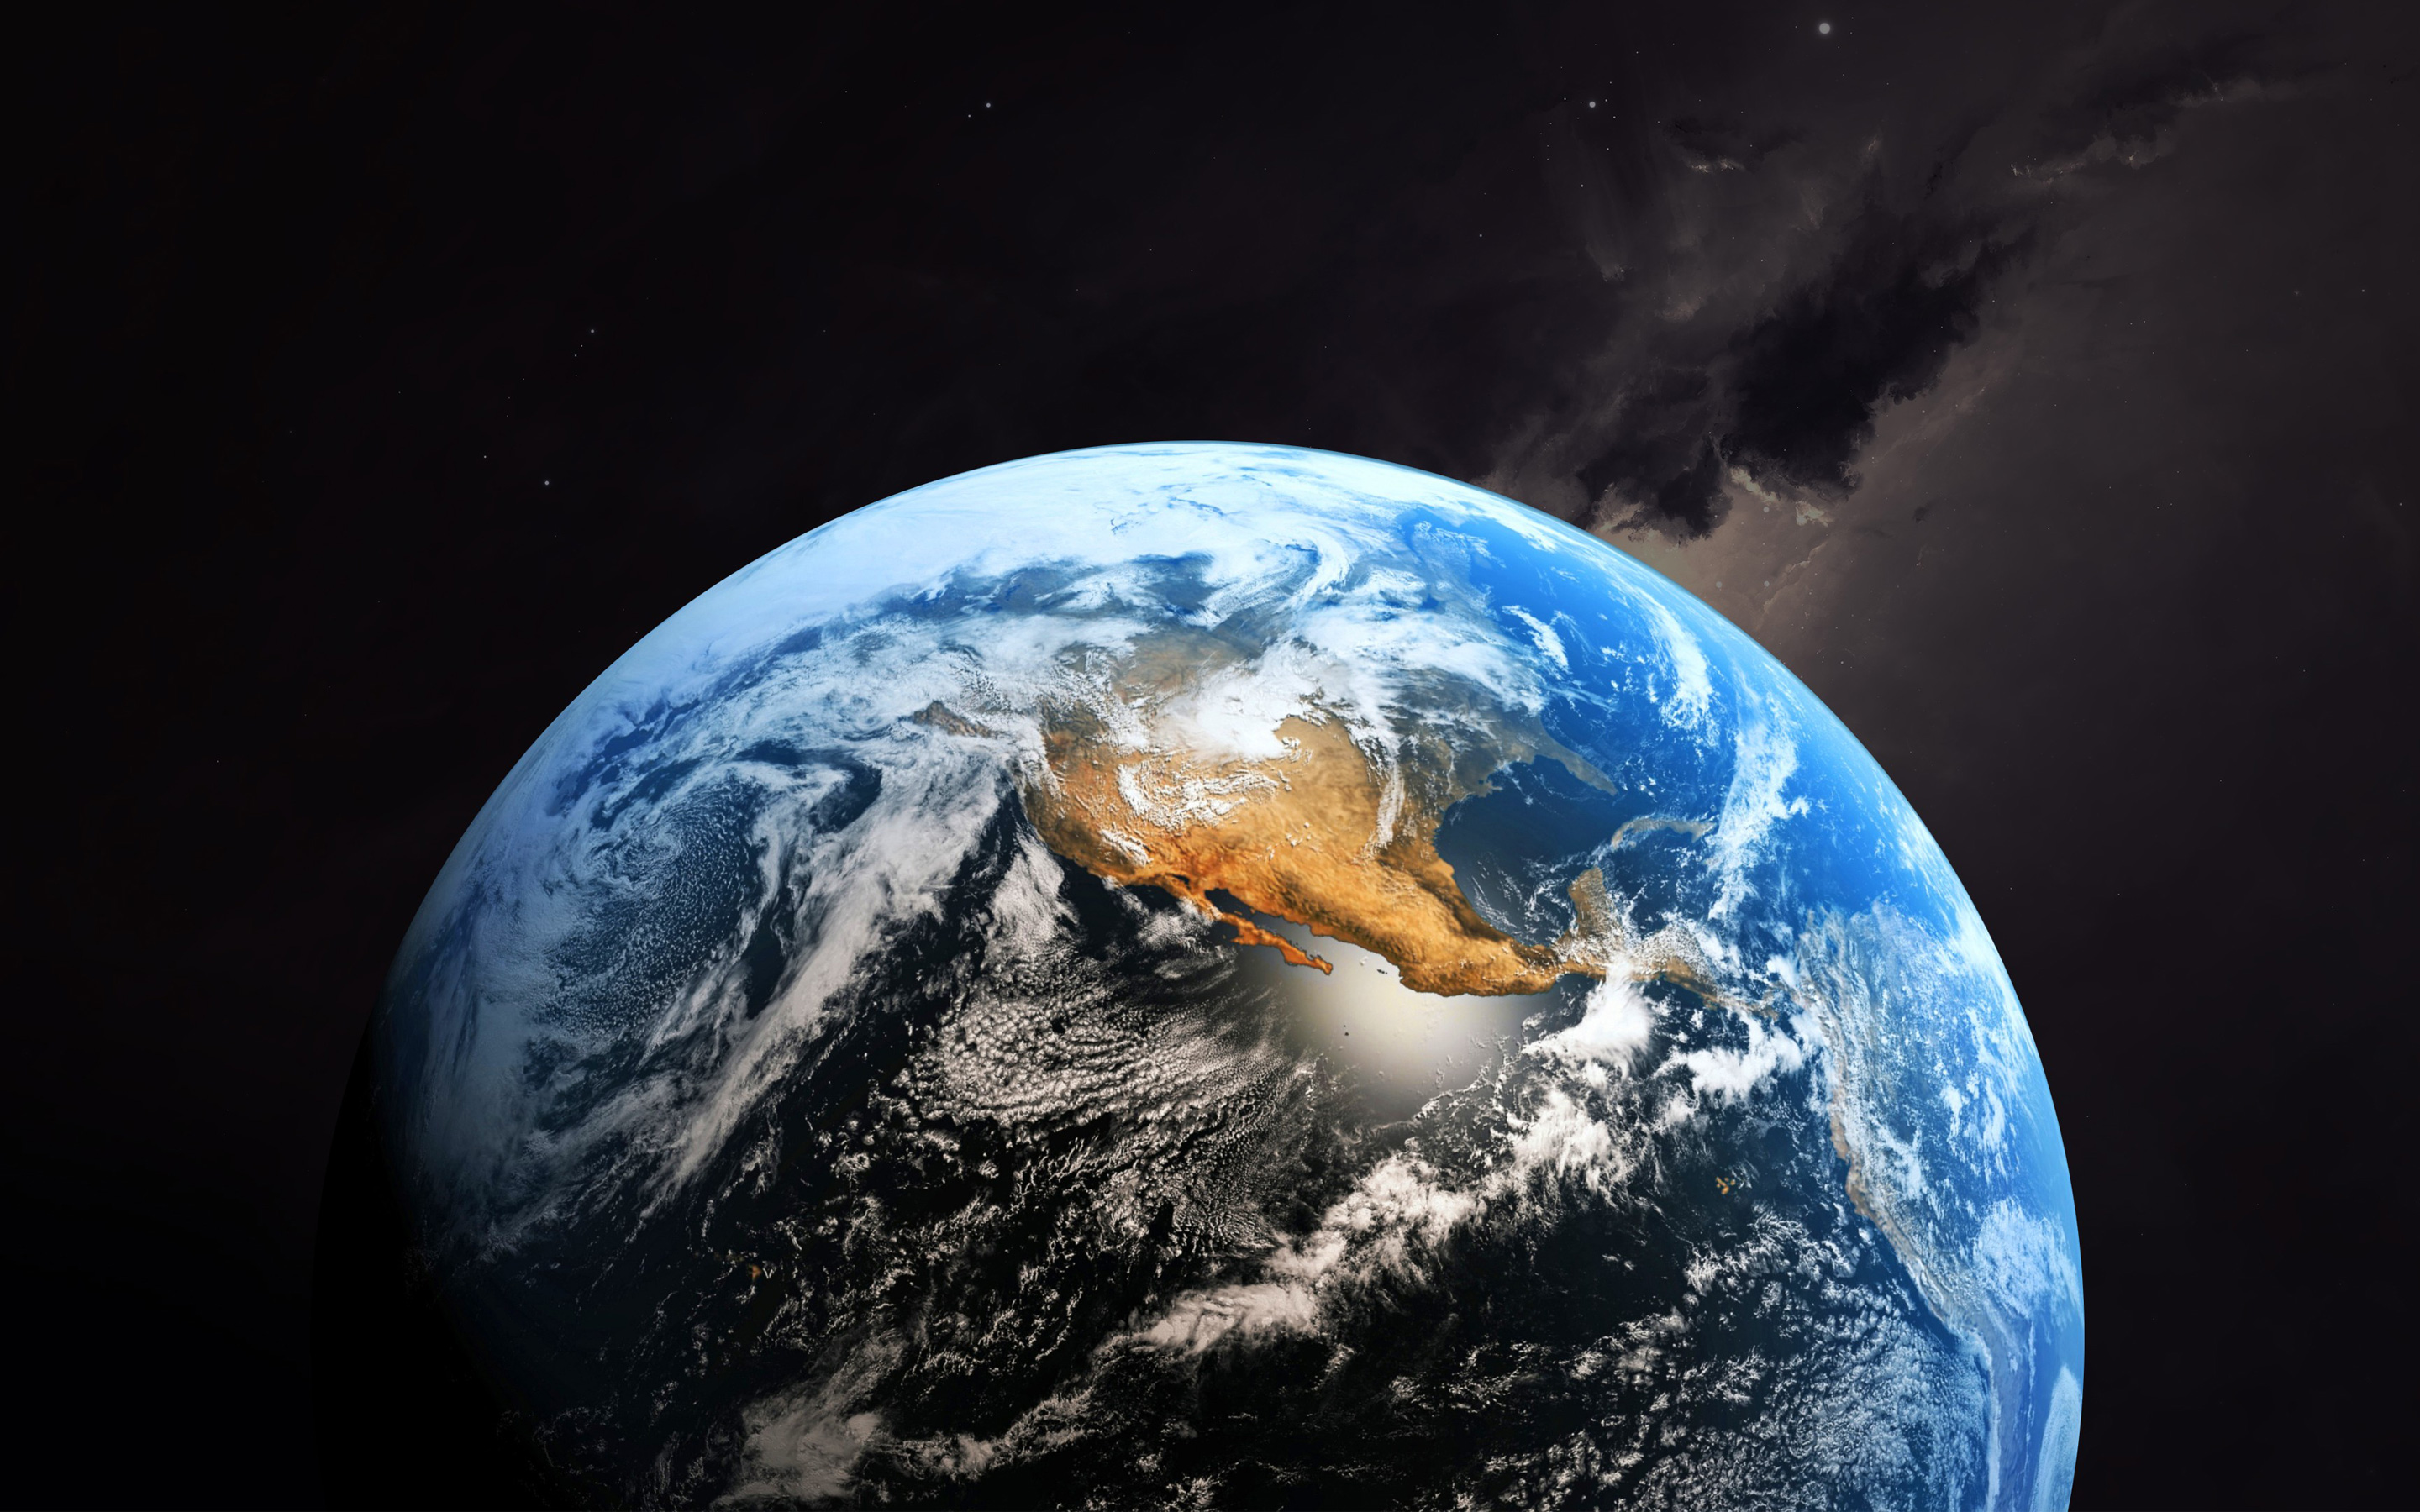 Planet Earth Backgrounds, Compatible - PC, Mobile, Gadgets| 2880x1800 px